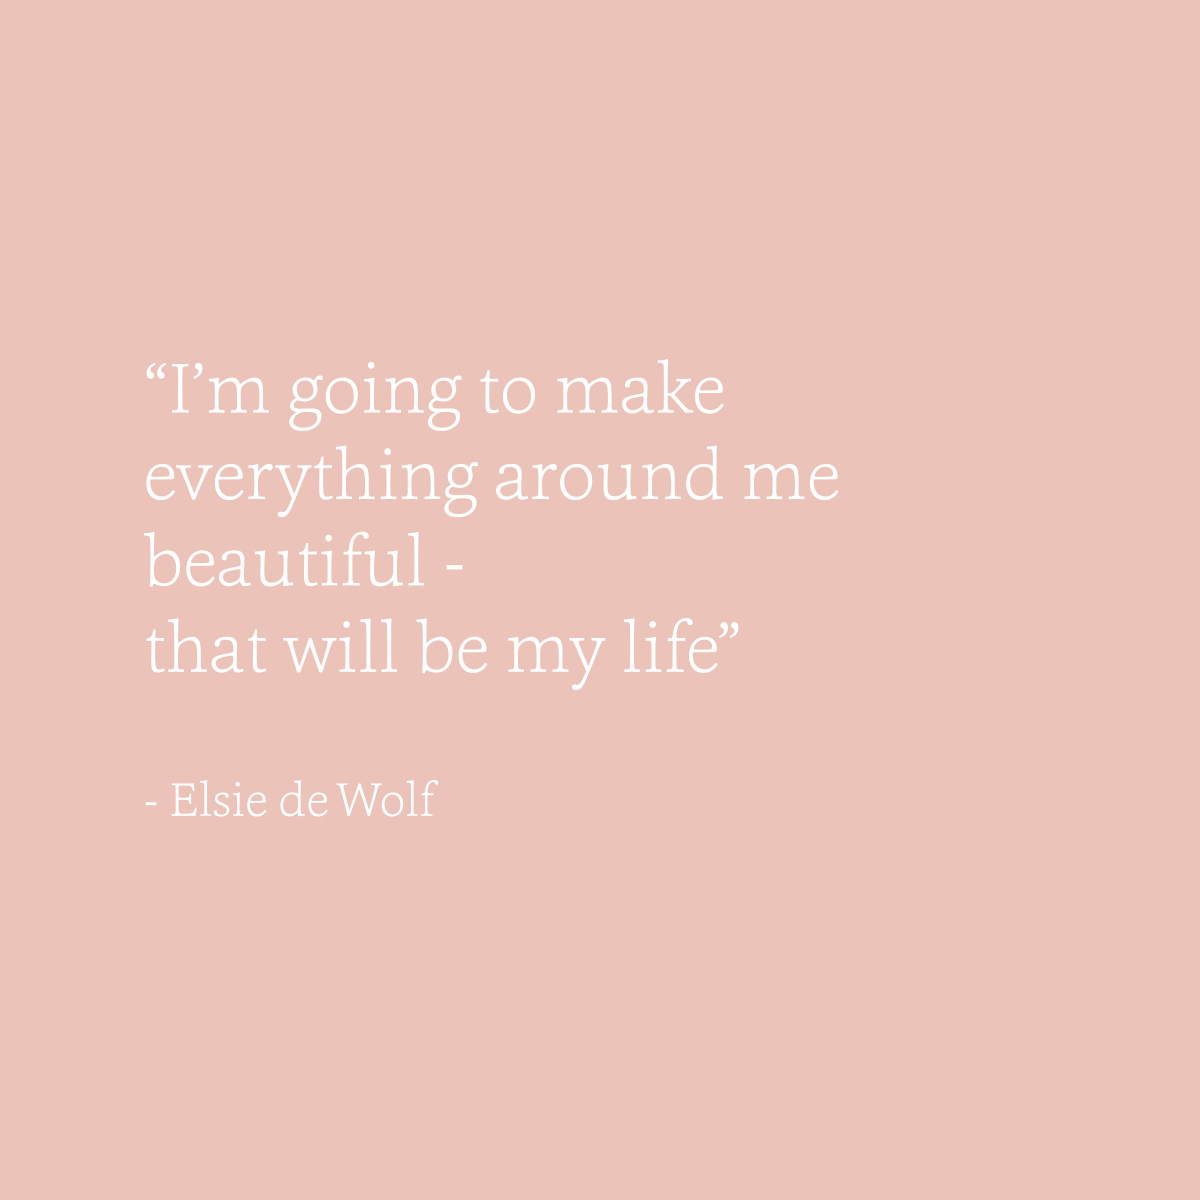 I'm going to make everything around me beautiful - elsie de wolf